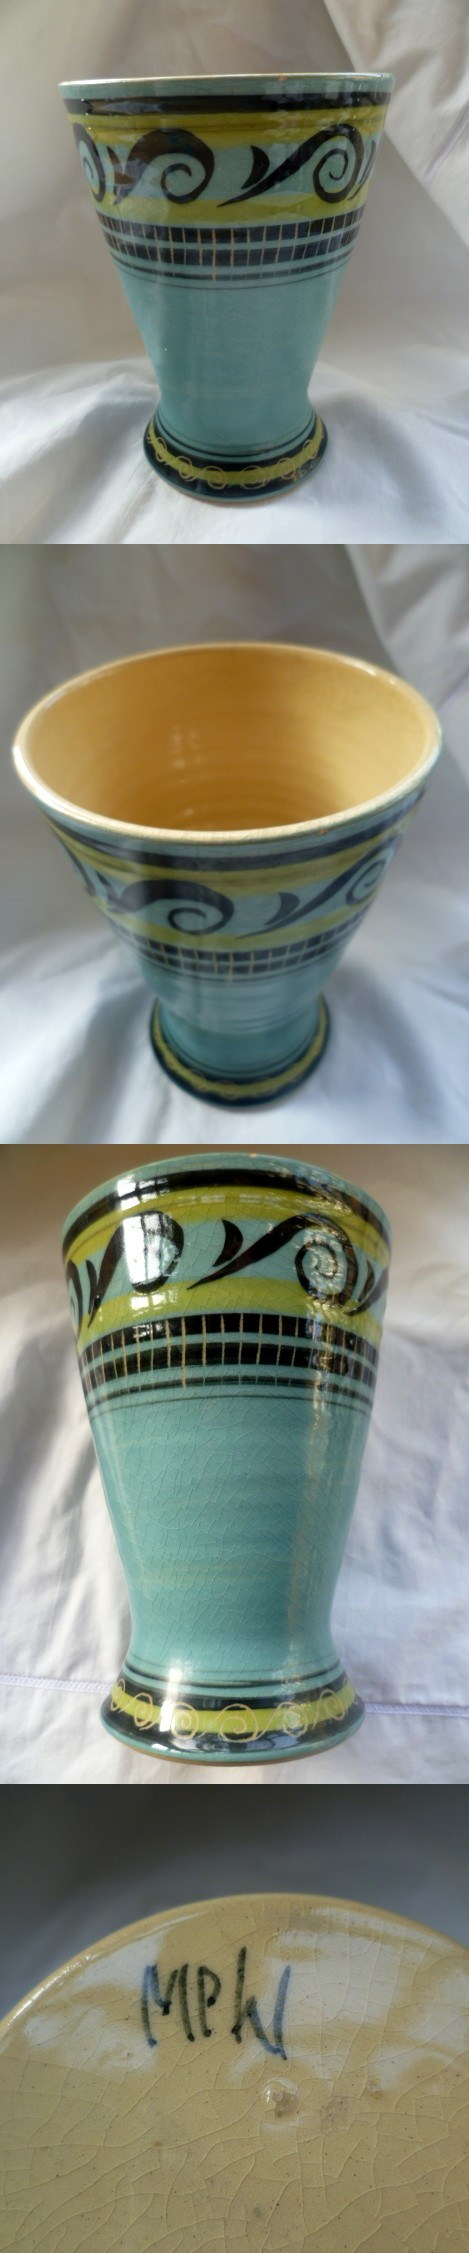 Hand painted ribbon vase - painted initials MPW Ampw10